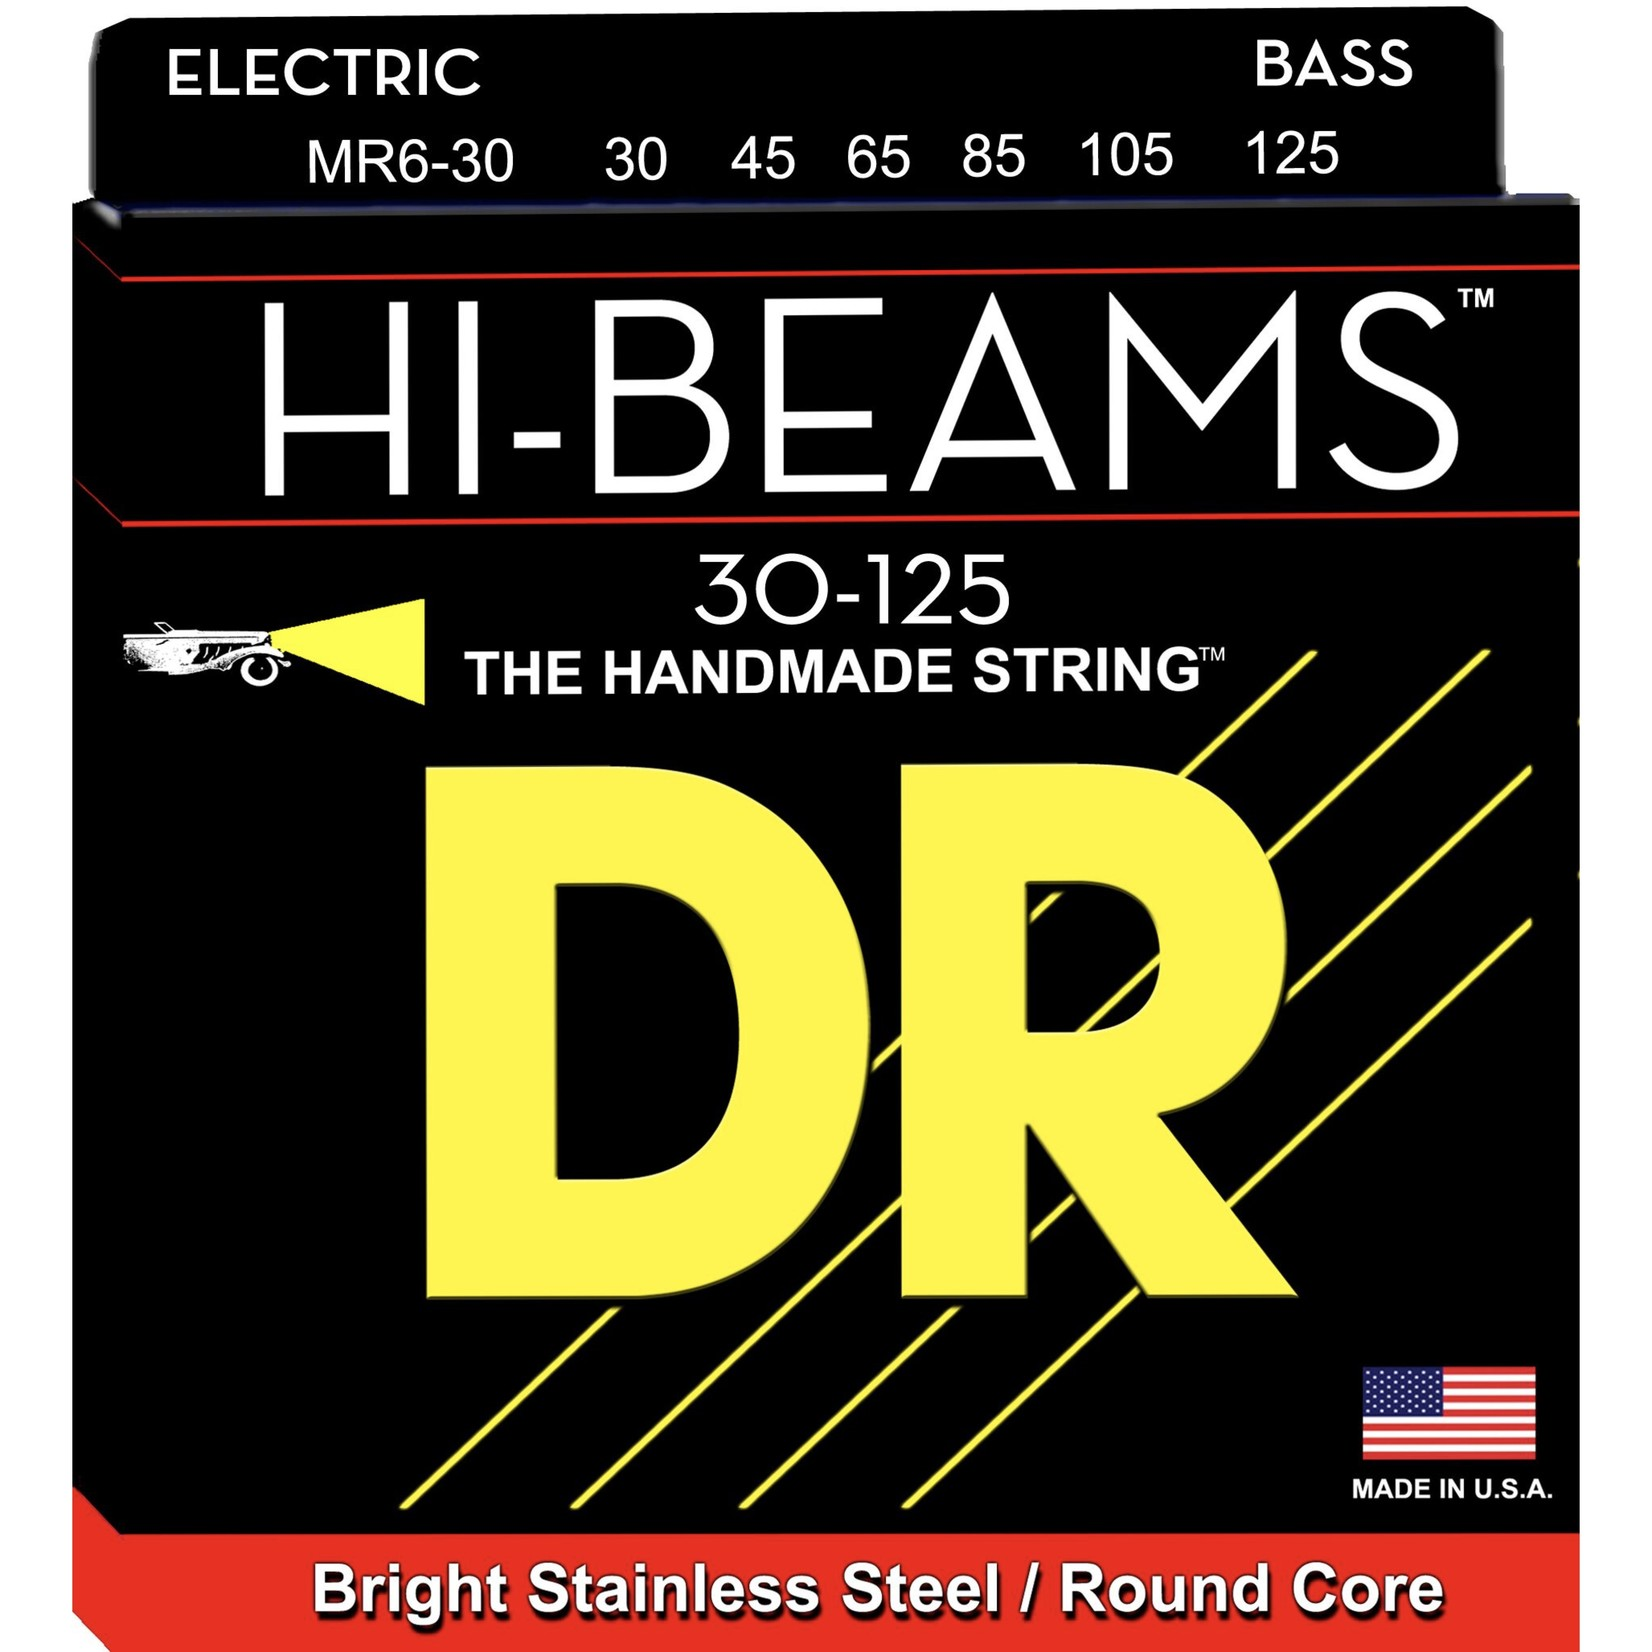 DR Strings DR Strings HI-BEAMª - Stainless Steel Bass Strings: 6-String Medium 30-125, MR6-30